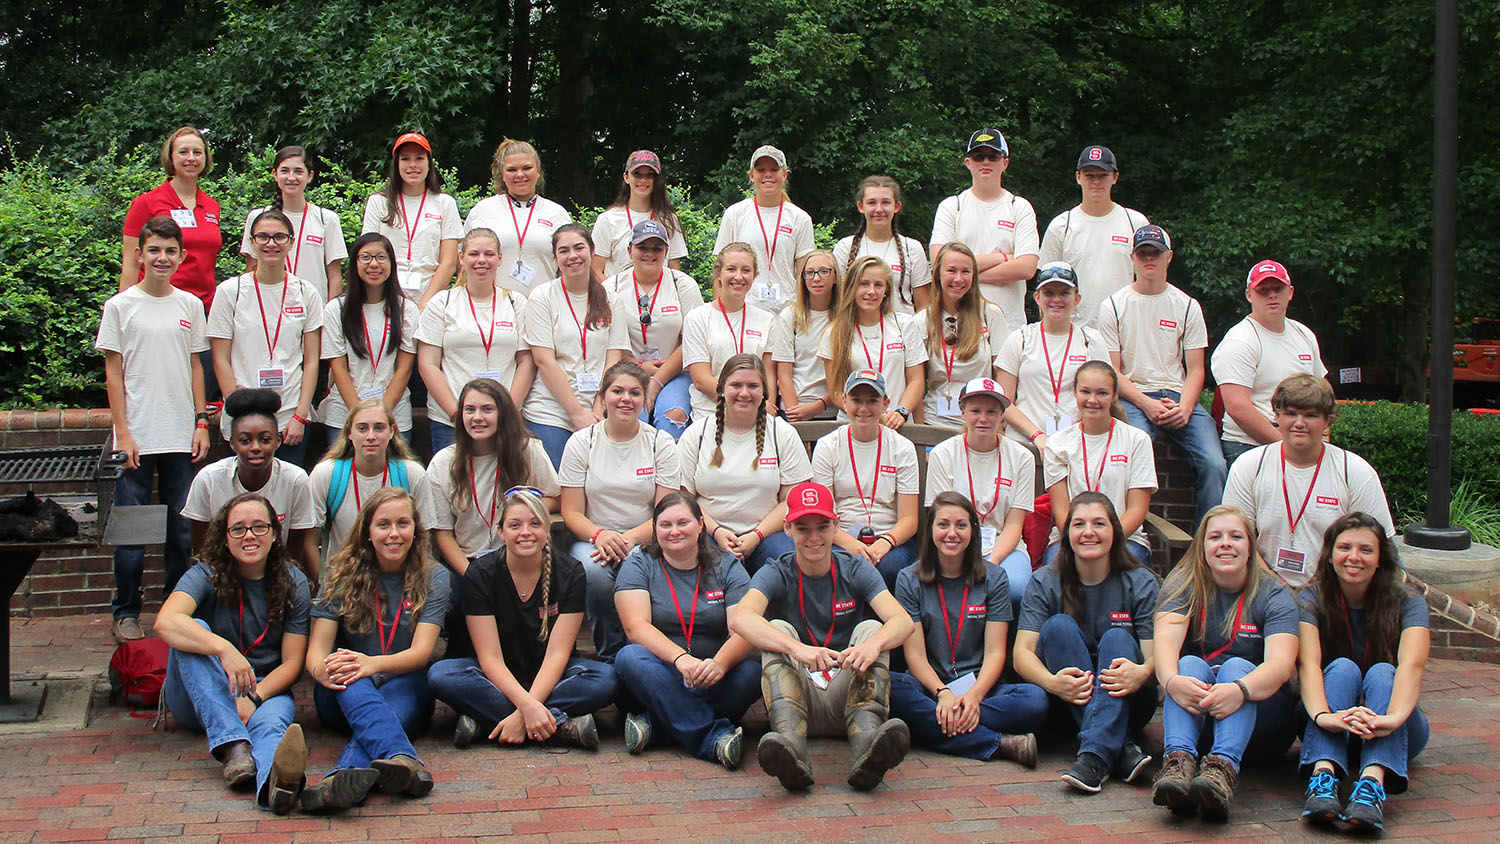 Group shot of students from Livestock Science Camp